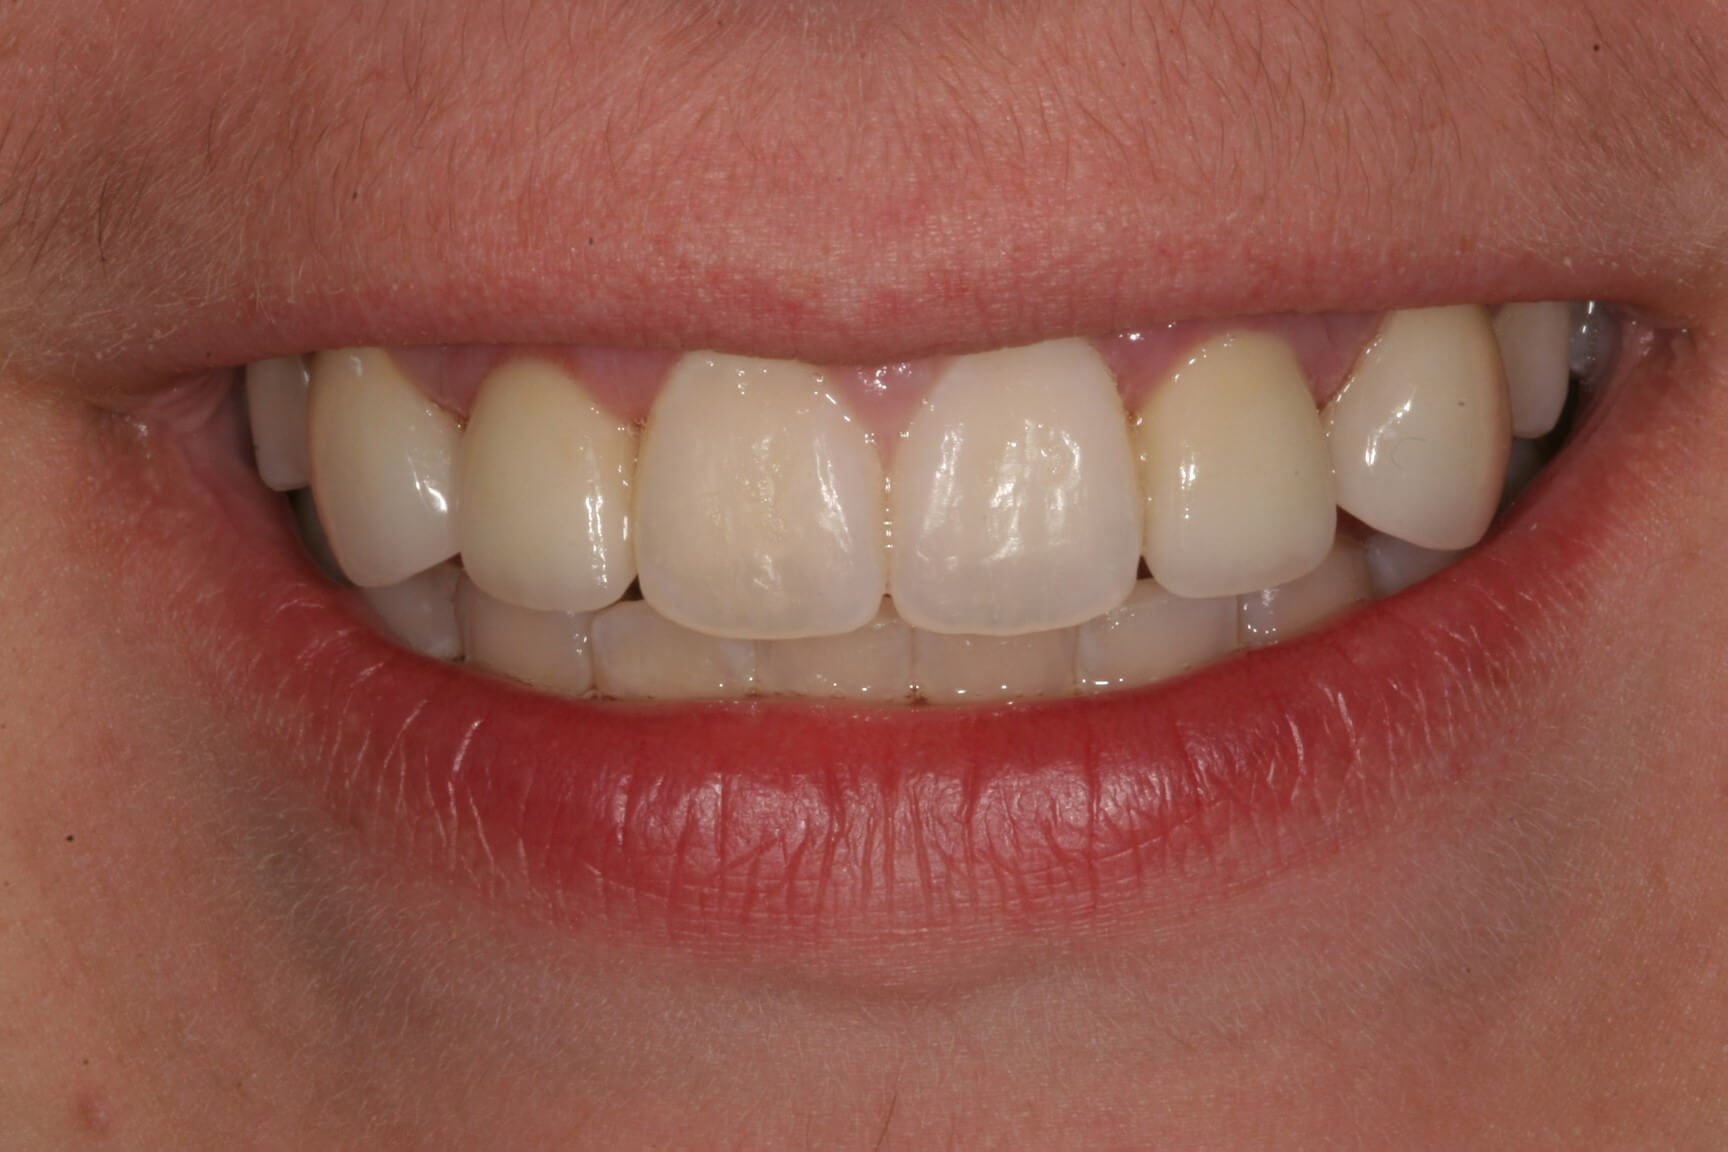 Aesthetic Gum and Bone Reshaping, two Dental Implants, and 4 Porcelain Restoration appointment in Madison